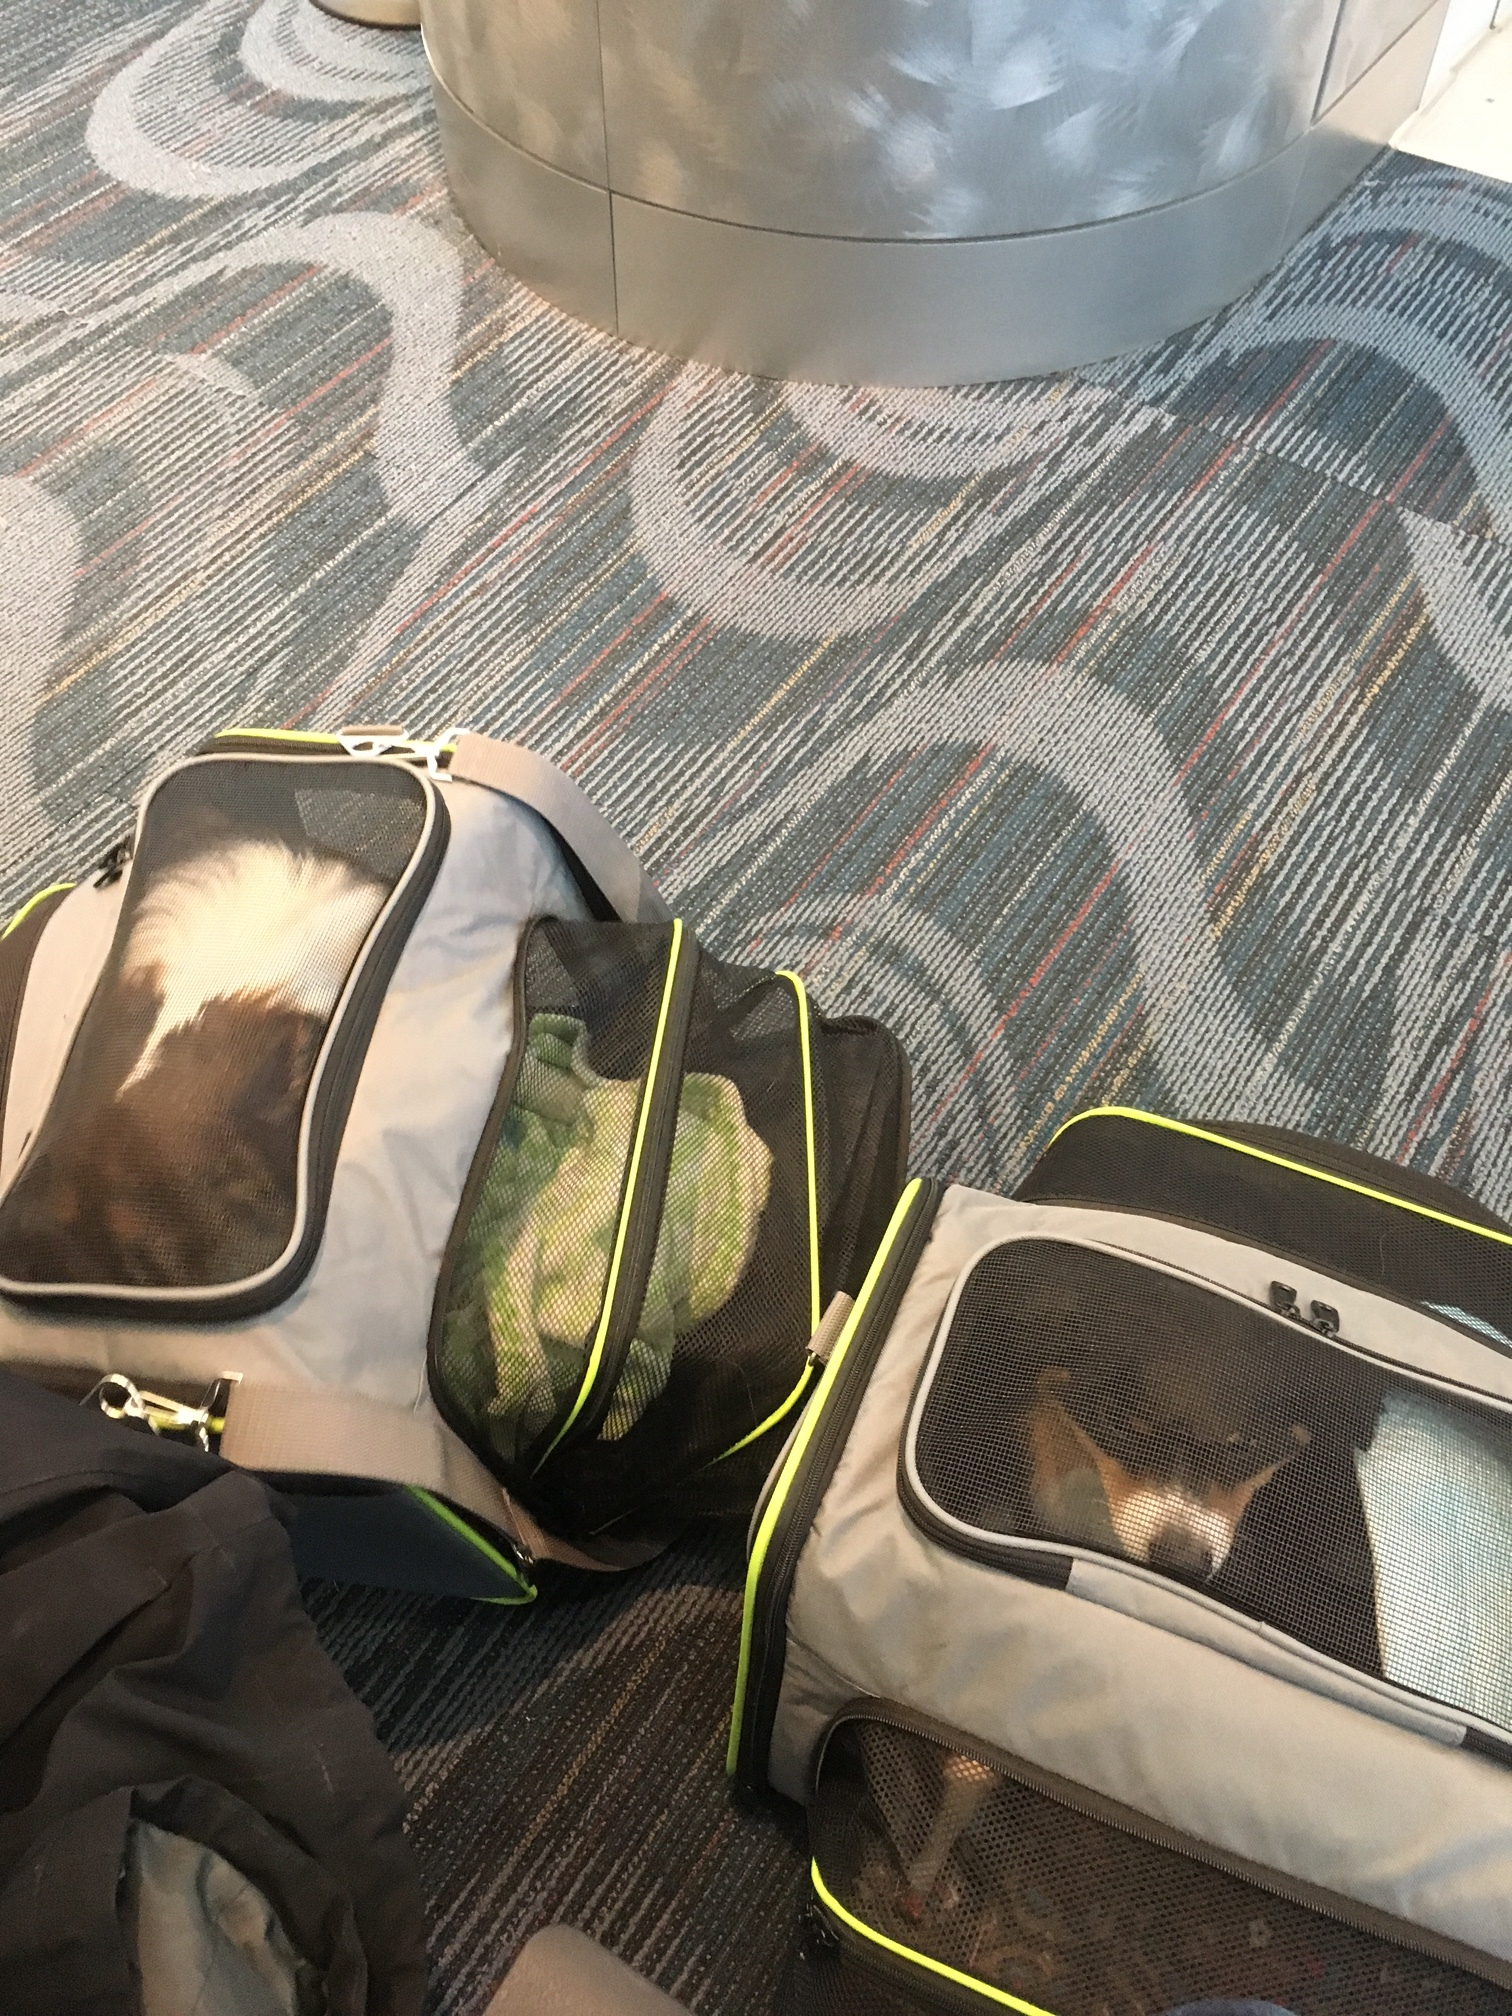 PCS-with-dogs-carry-on-carriers-schuyler-croy.JPG